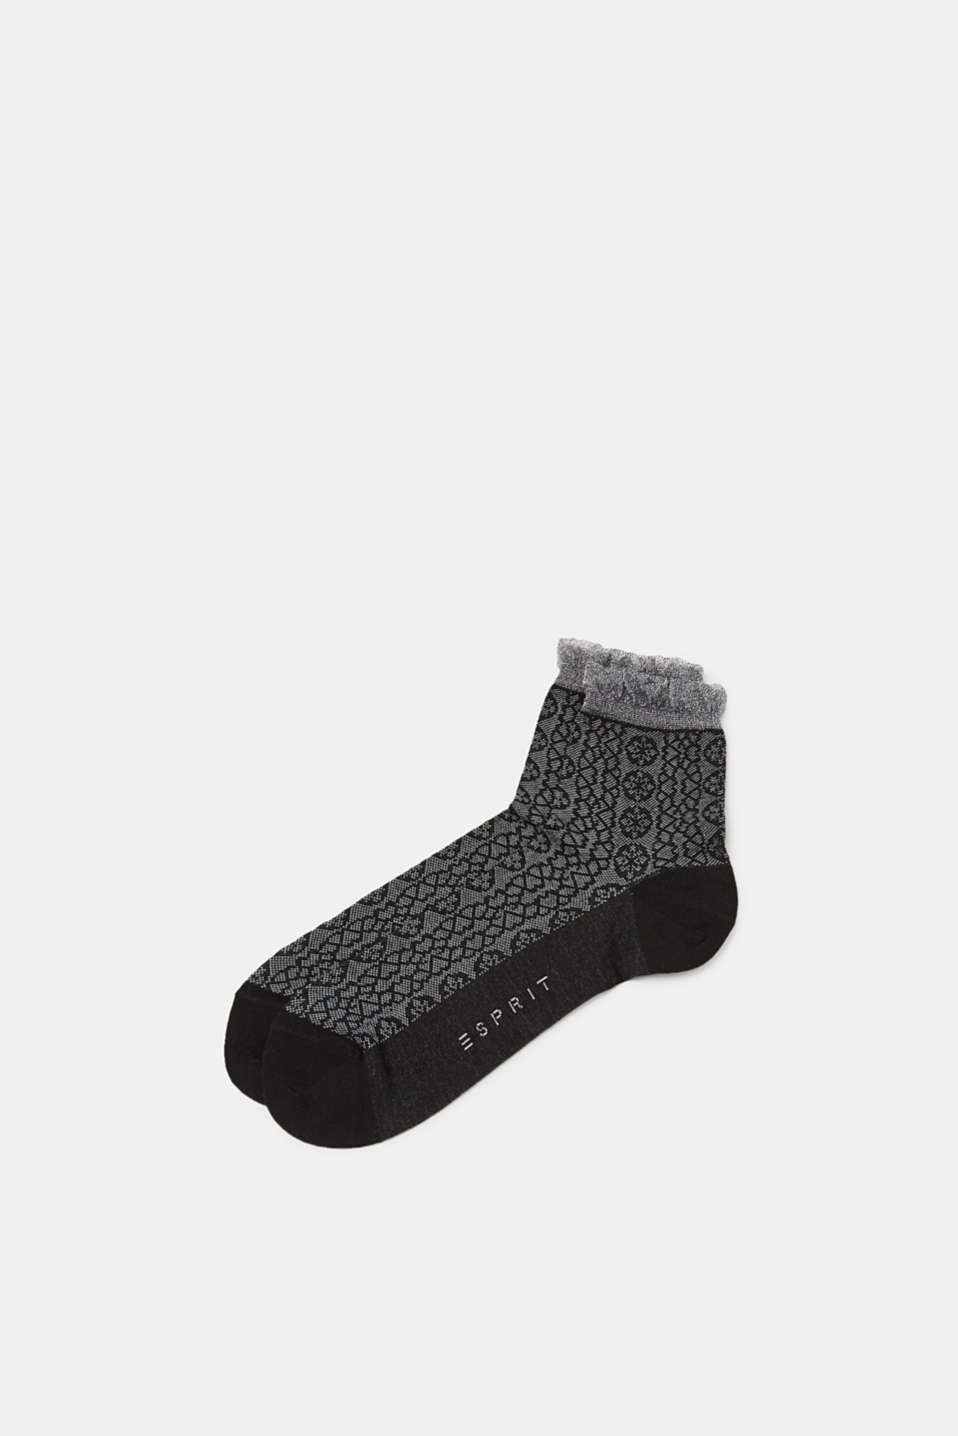 The fine, ornamental intarsia and the shimmering, frilled trim give these socks a feminine look.